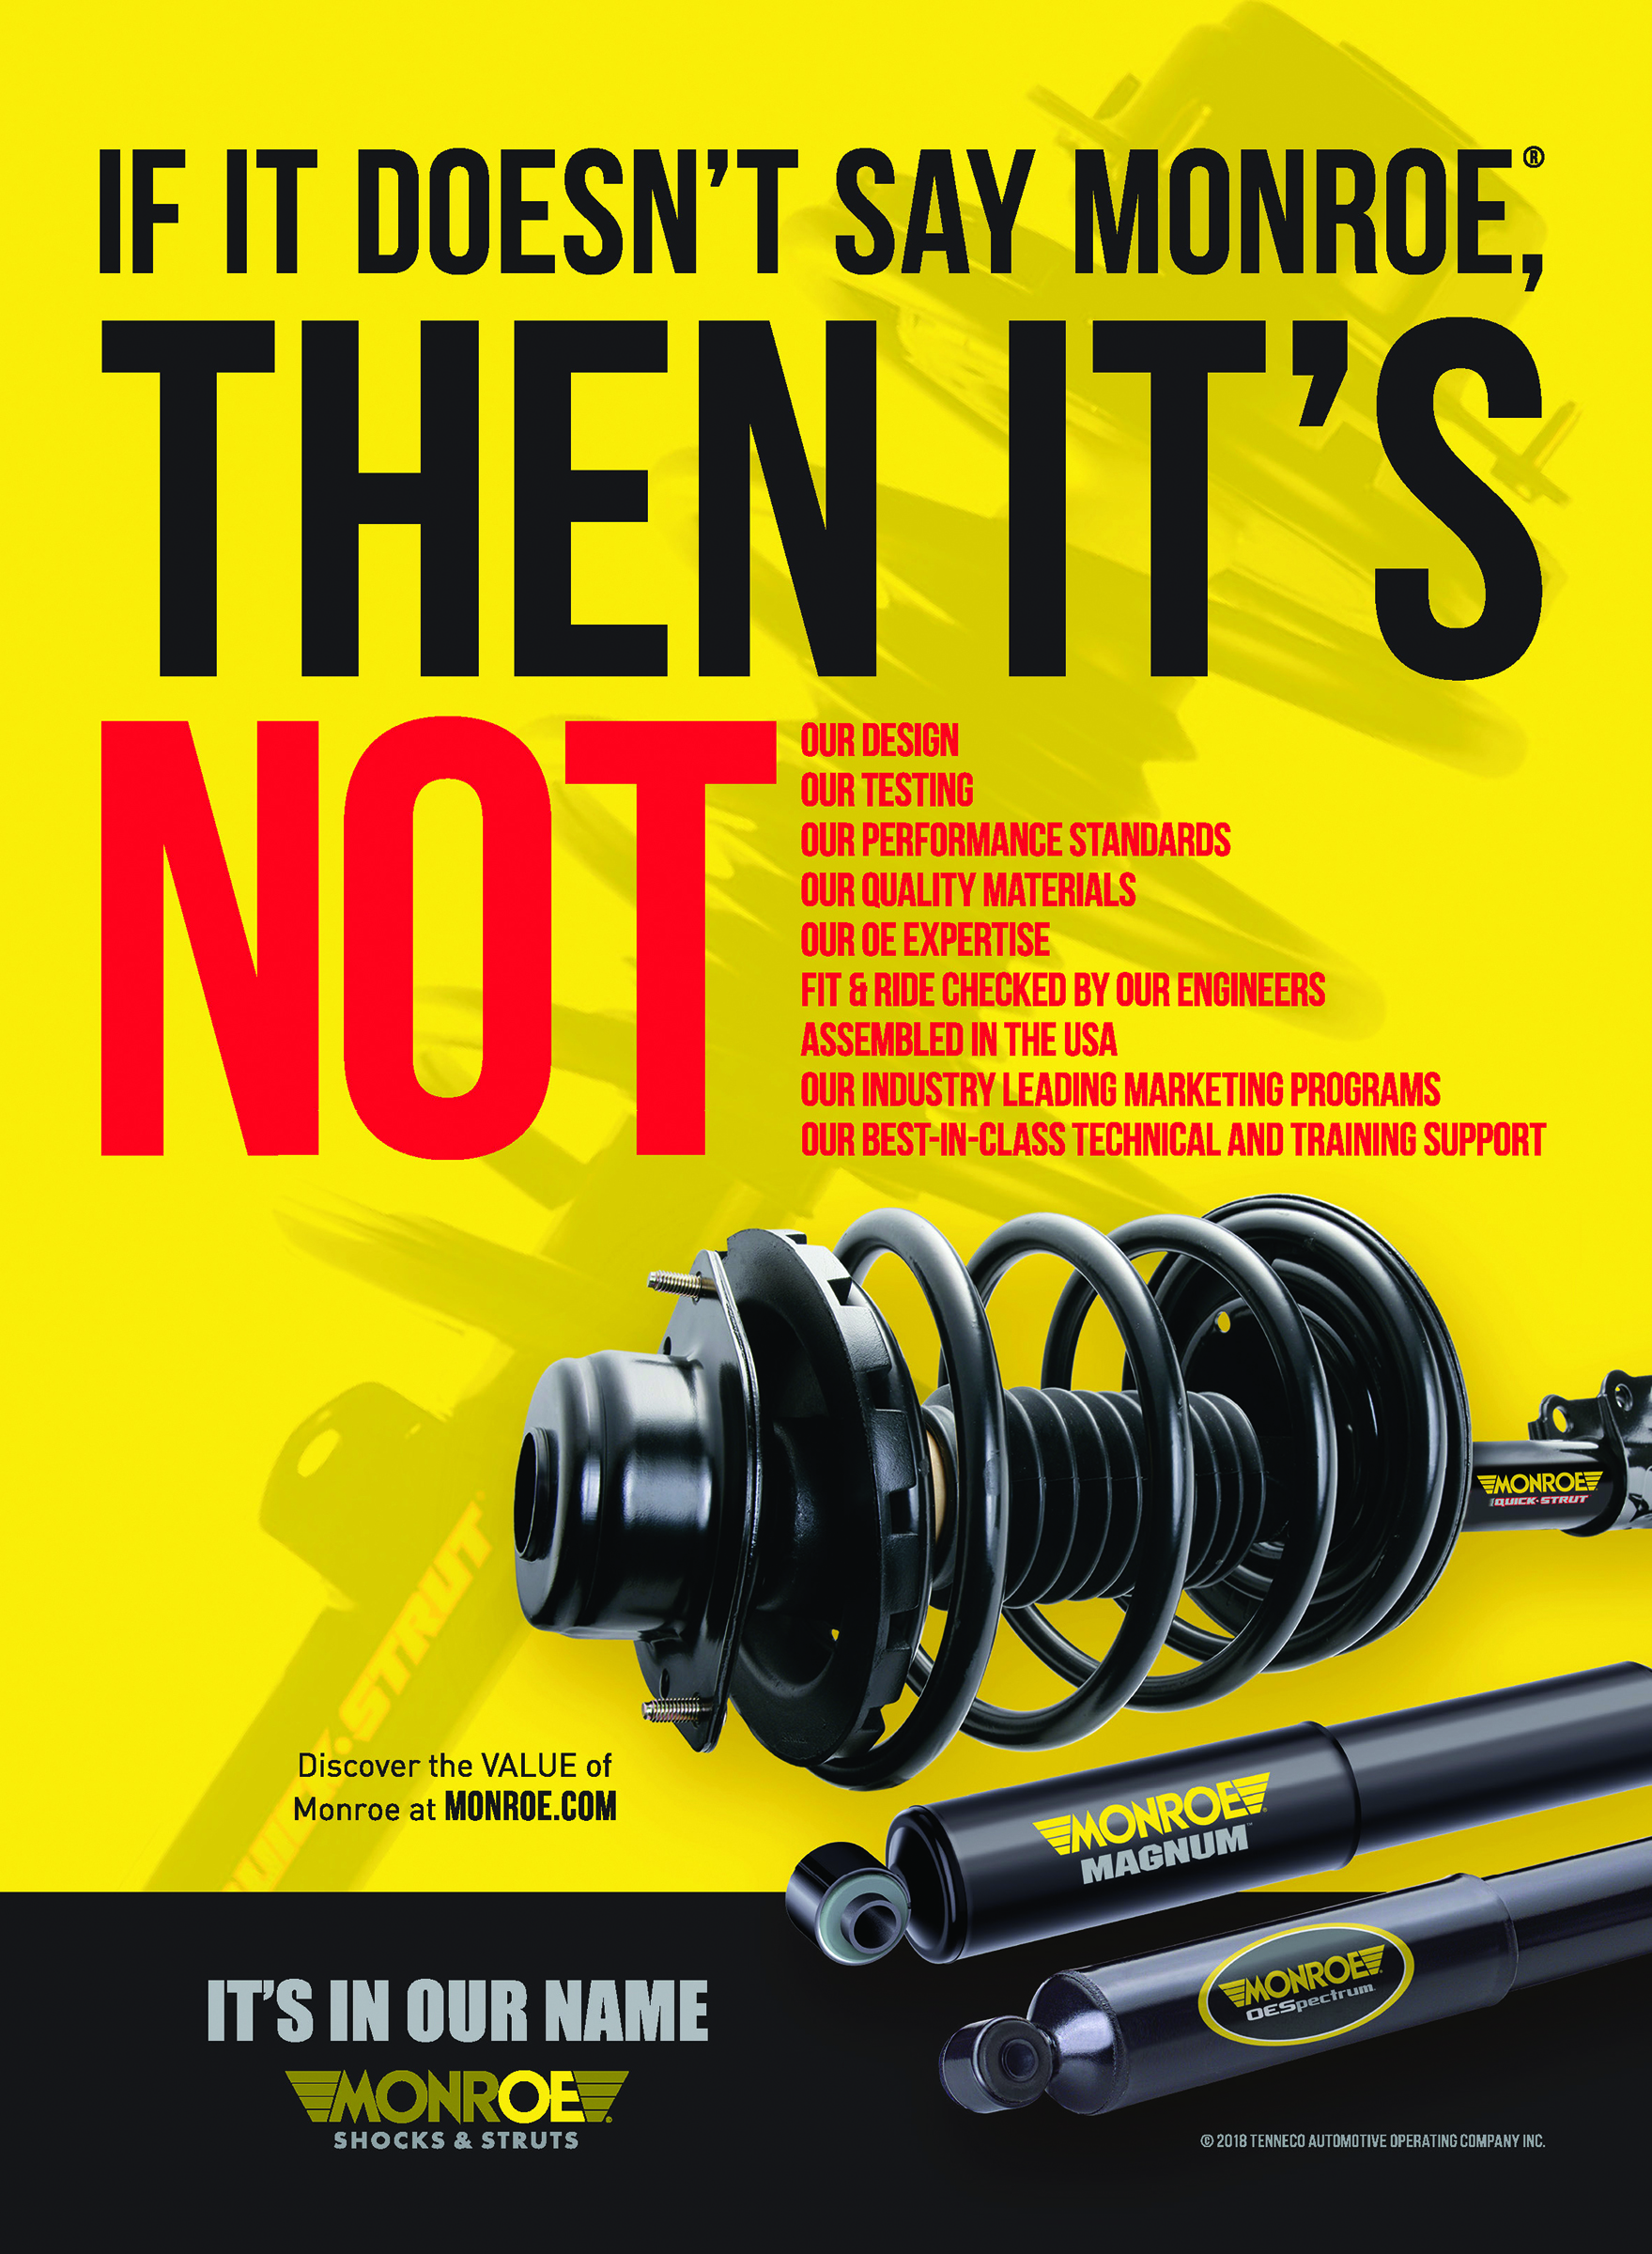 Tenneco Ad Campaign Touts Advantages of Monroe Products